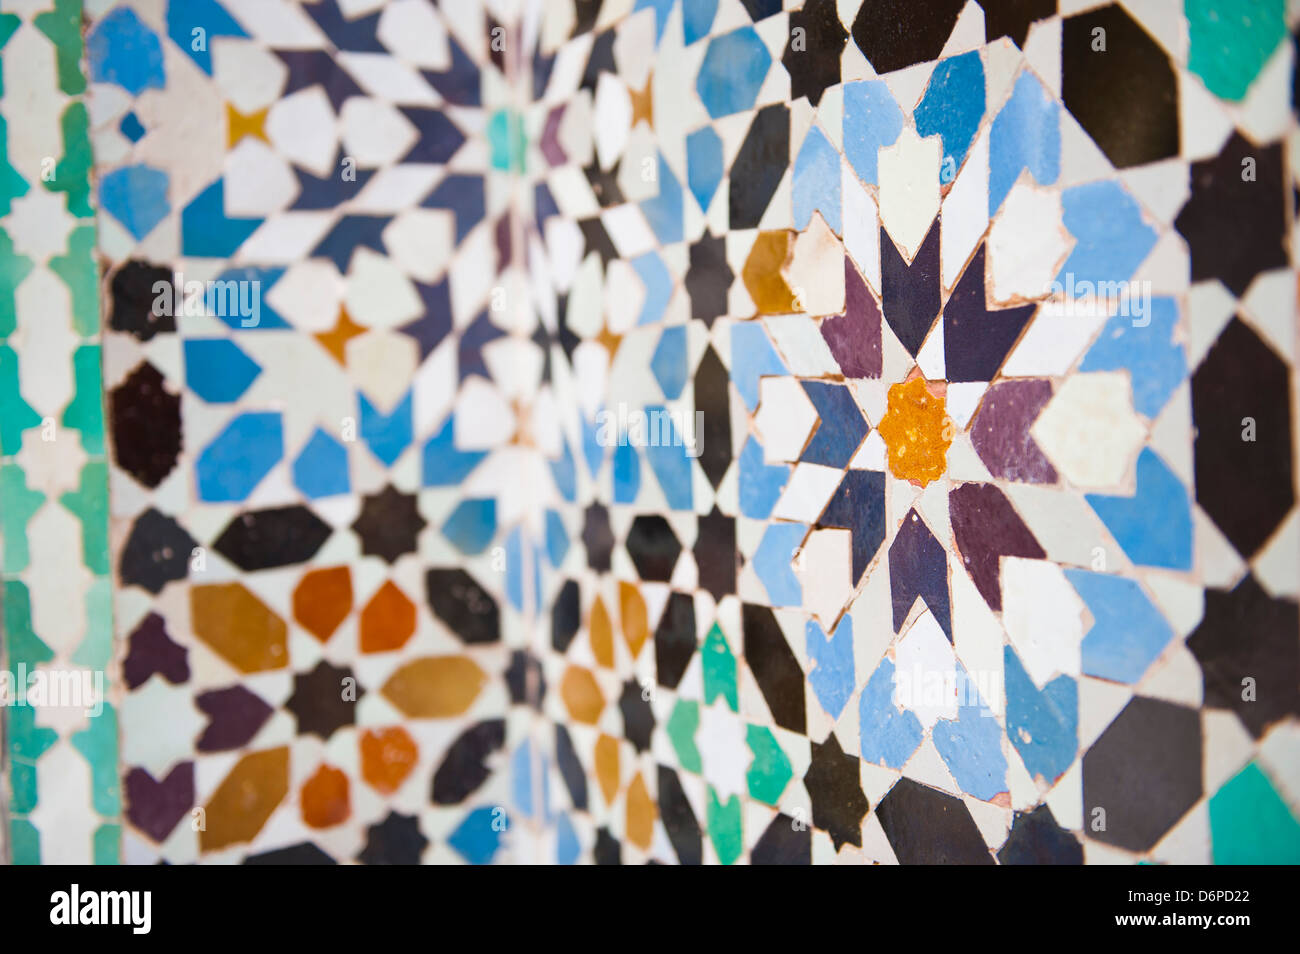 Colourful mosaic at Medersa Ben Youssef, the old Islamic school, Old Medina, Marrakech, Morocco, North Africa, Africa - Stock Image